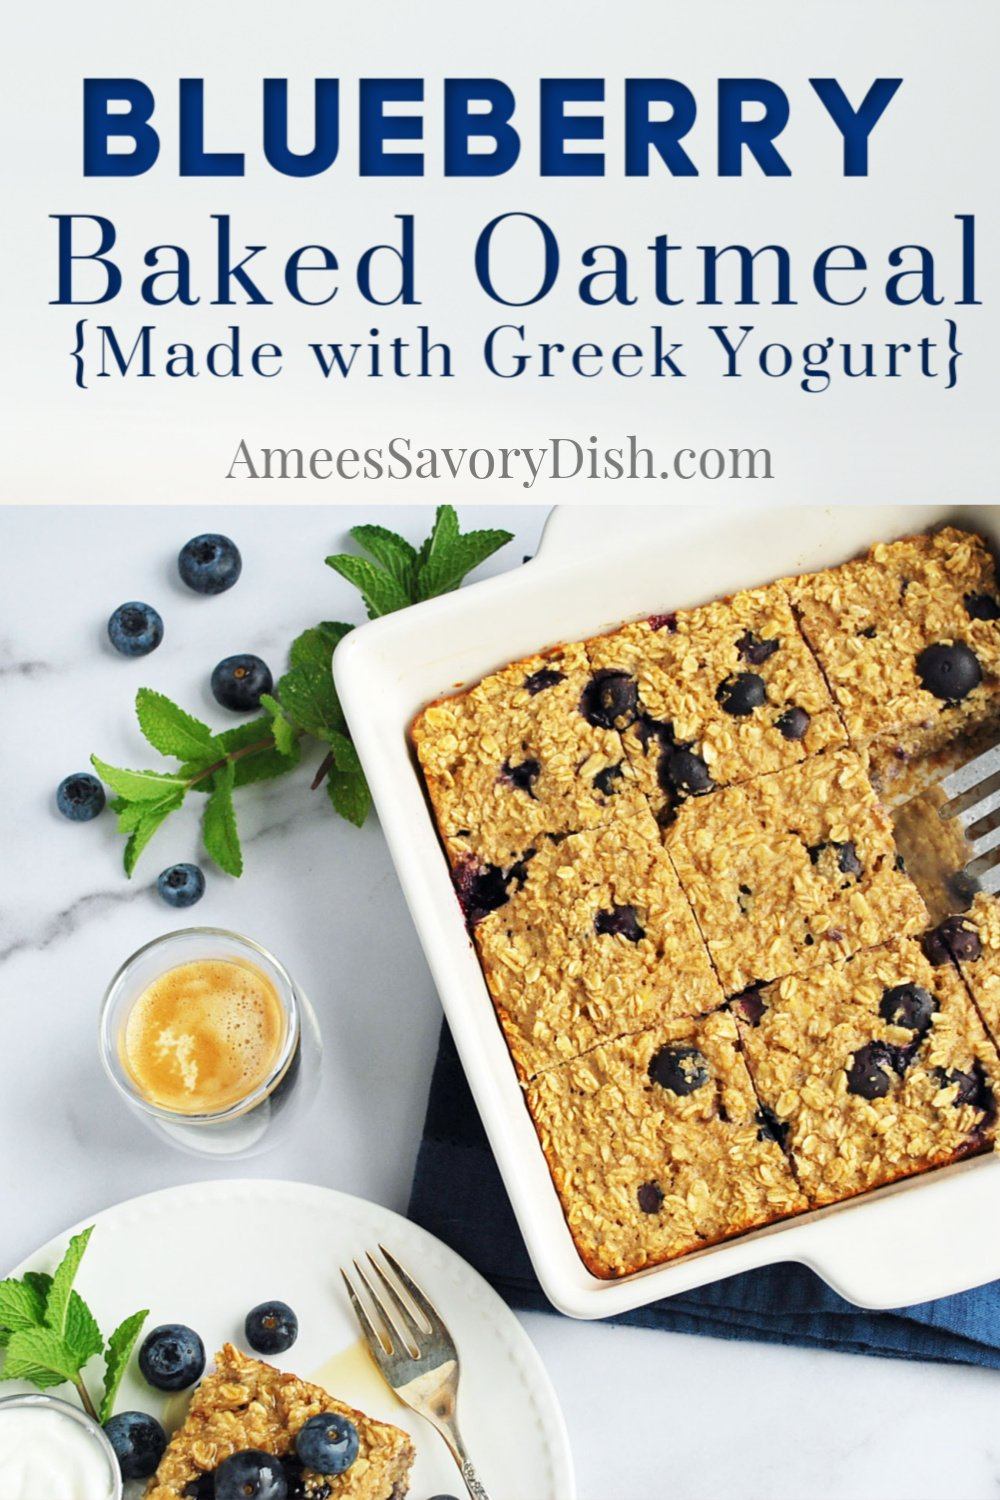 The best easy baked oatmeal recipe using fresh blueberries, oats, protein-packed Greek yogurt, and oat milk. So simple and delicious!! #bakedoatmeal #blueberryrecipe #bakedoats #breakfastrecipe via @Ameessavorydish